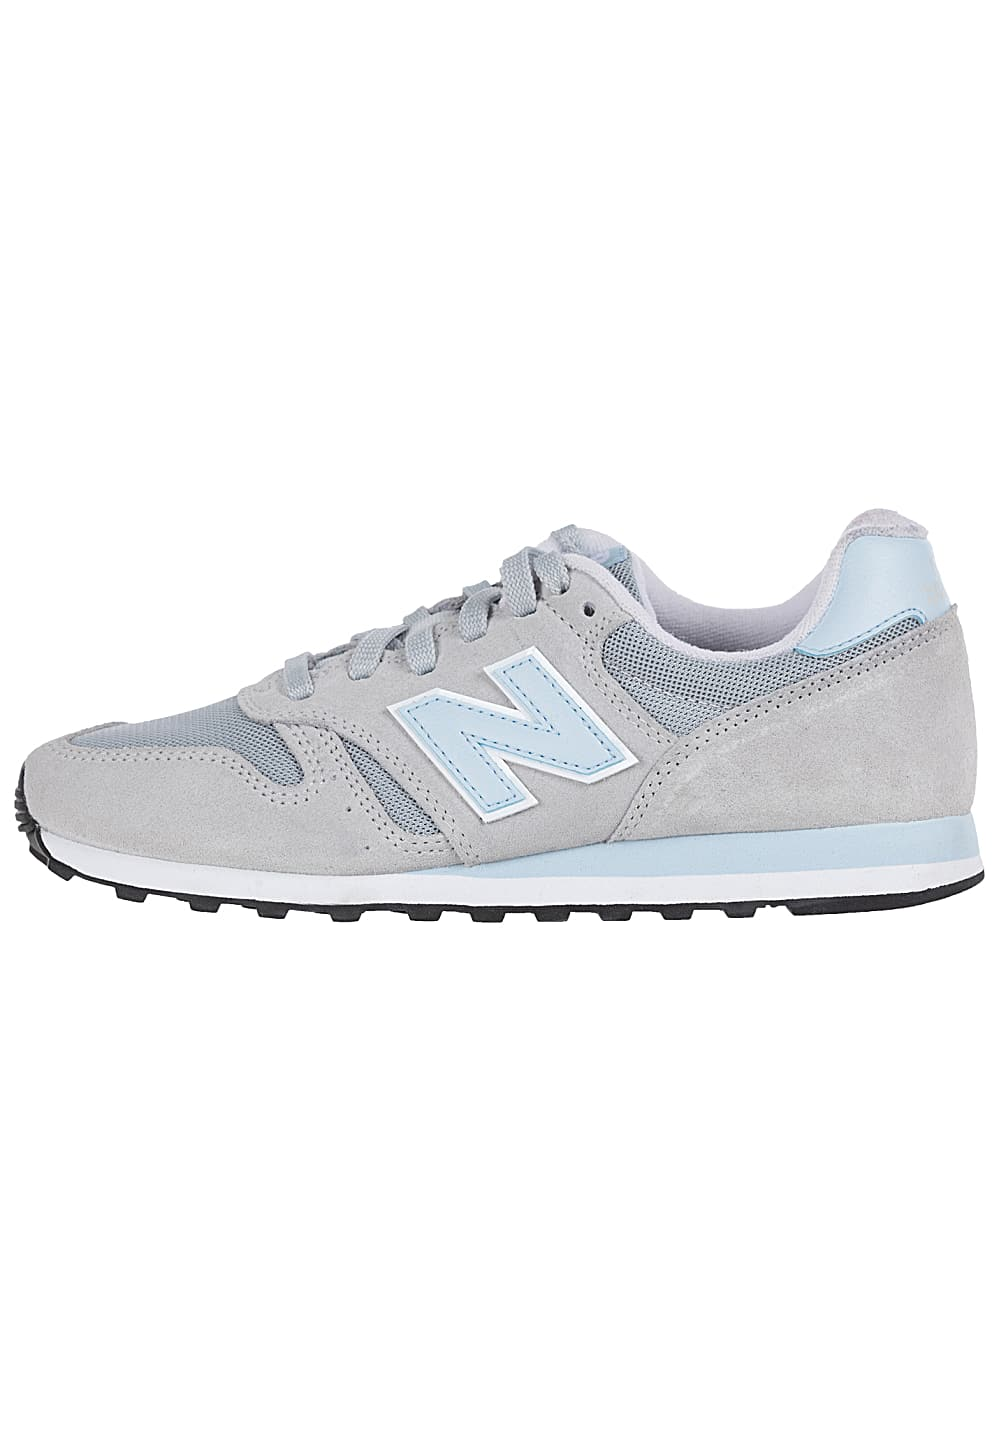 NEW BALANCE WL373 B - Sneaker für Damen - Grau - Planet Sports